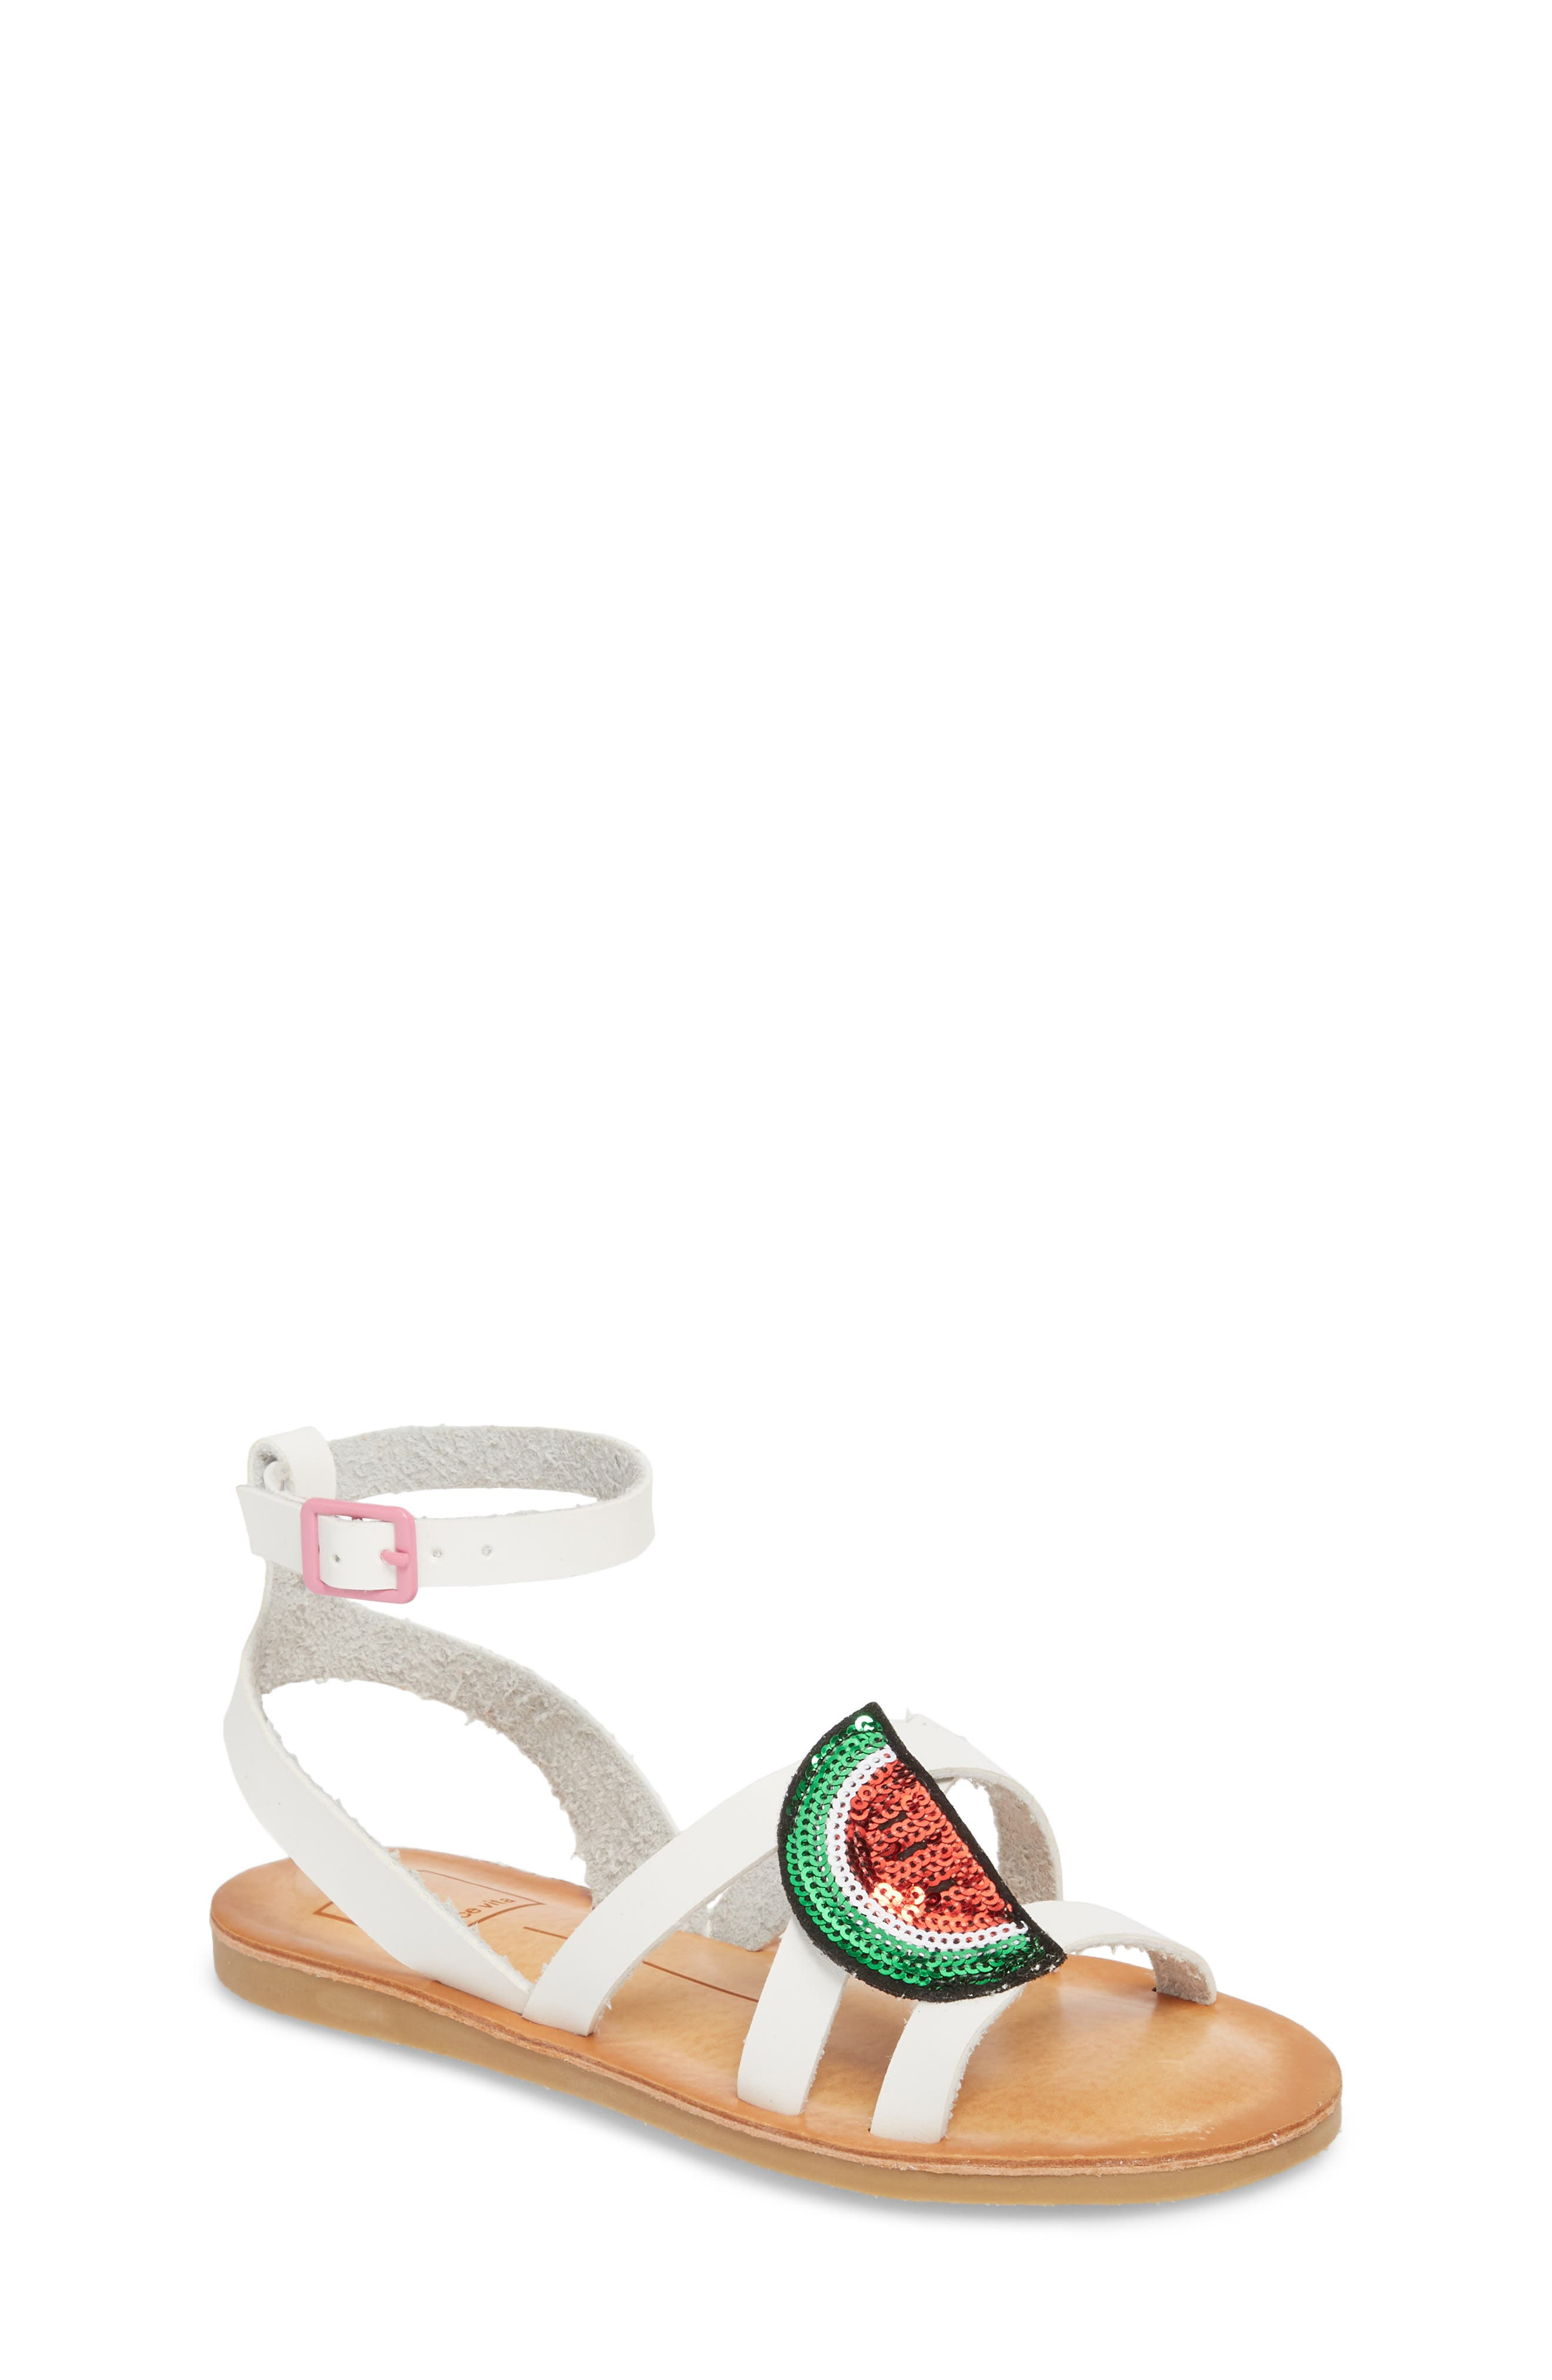 Jaclin Fruit Sequined Sandal,                             Main thumbnail 1, color,                             100